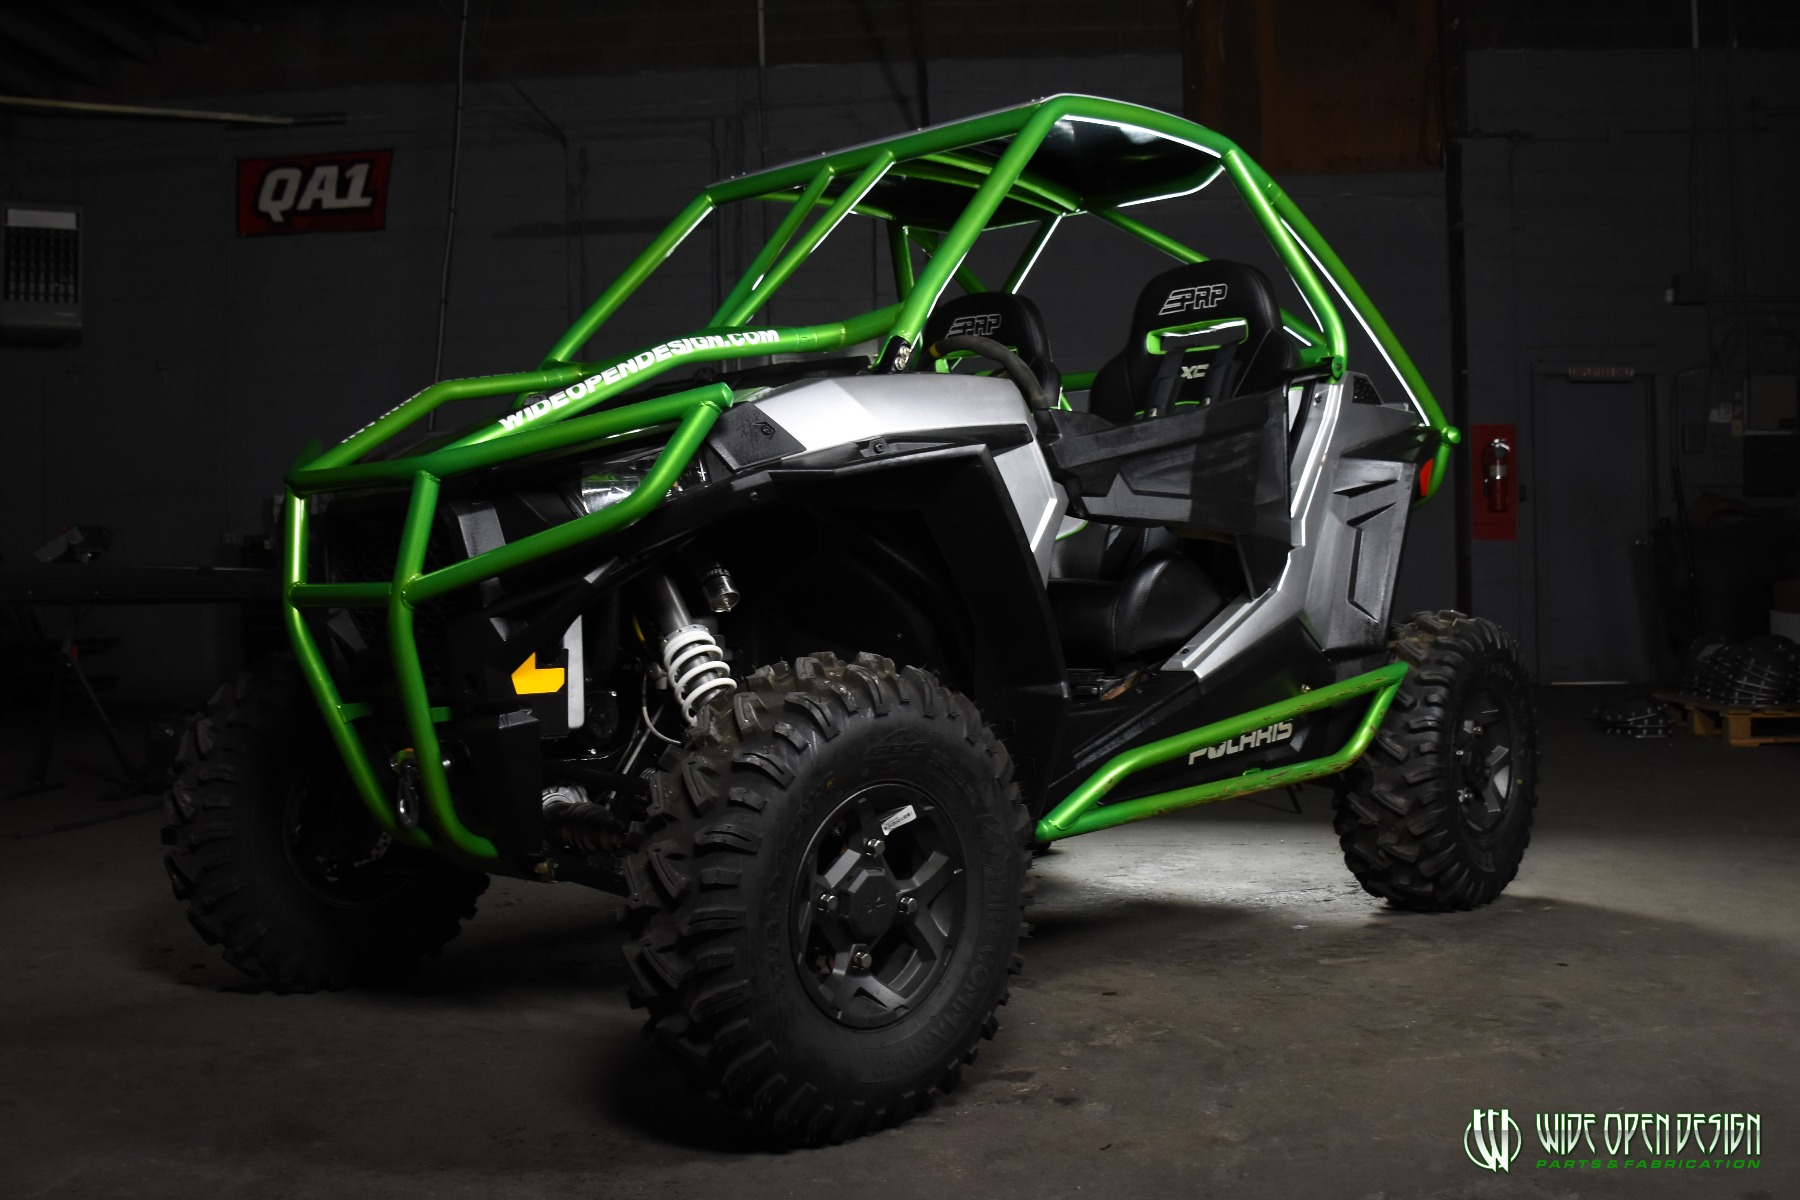 Jason's 1000s RZR with Wide Open Design Rolled Roof Cage, Front Bumper with Tie In, and Rocker Guards 2